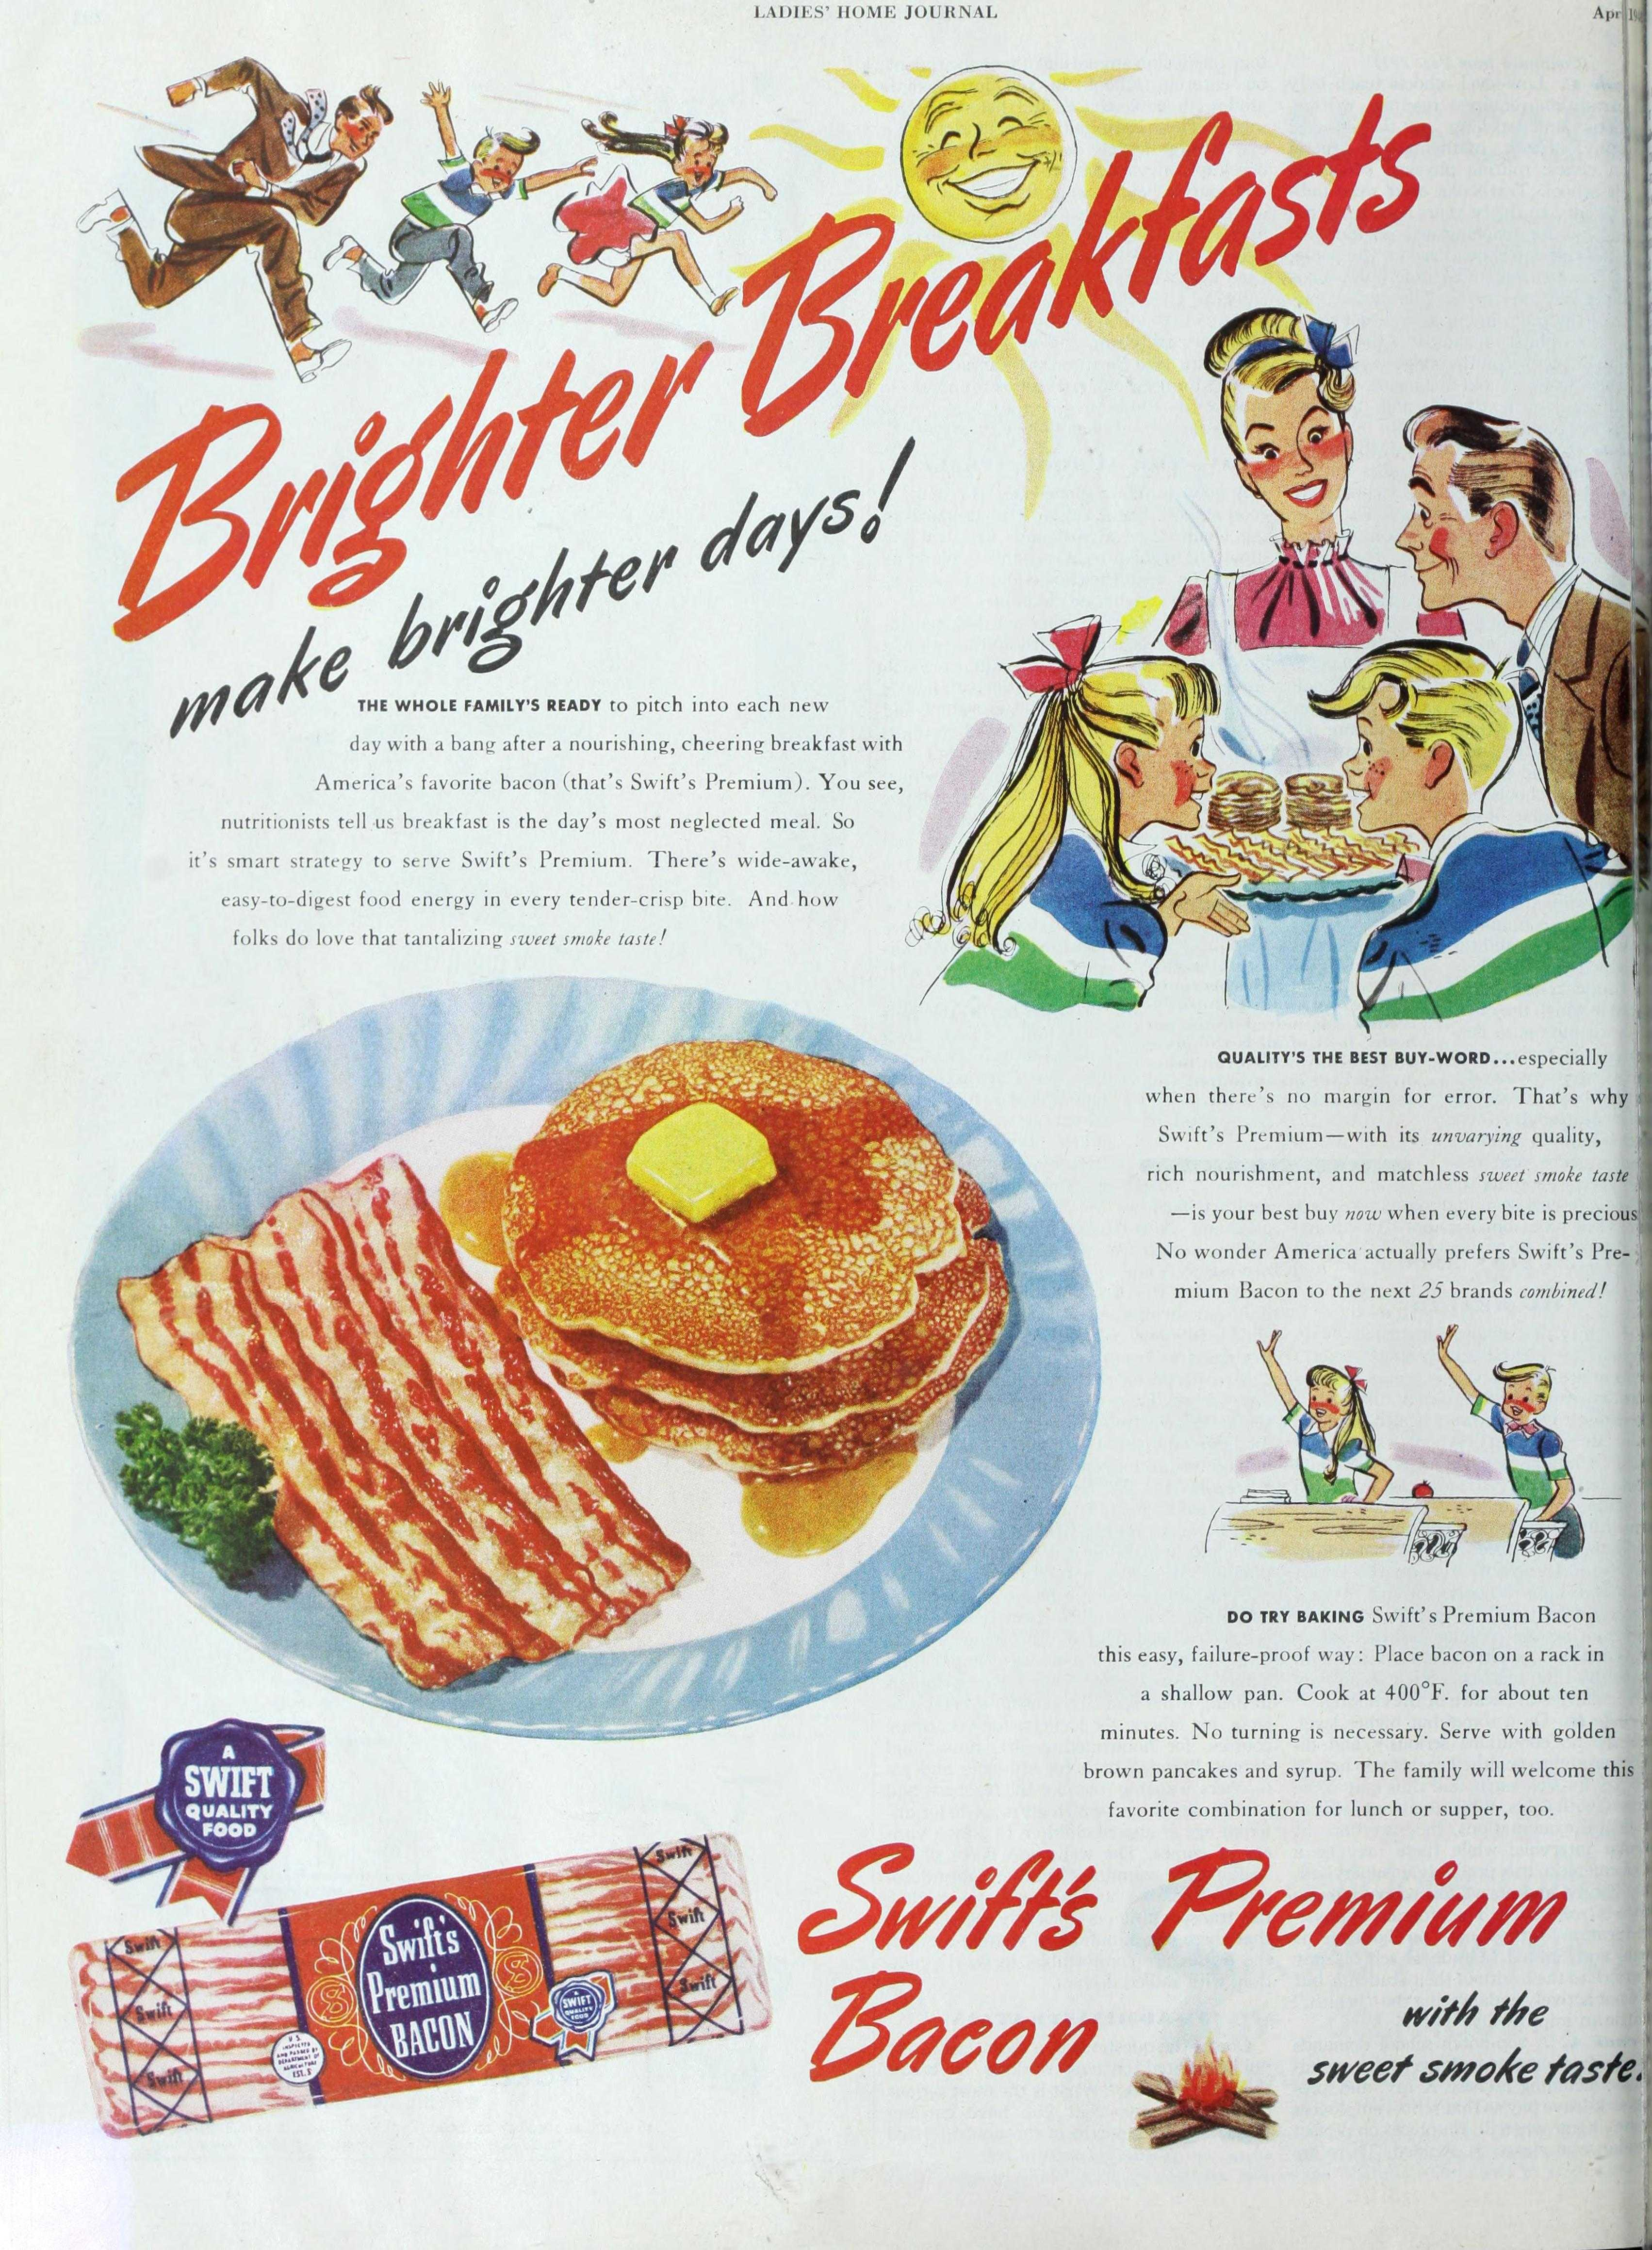 The breakfast we consider the tradition of America isn't as traditional as it seems. We ought to examine our long-held traditions to see why they exist, such as the emphasis on selling leftover bacon as an American staple.